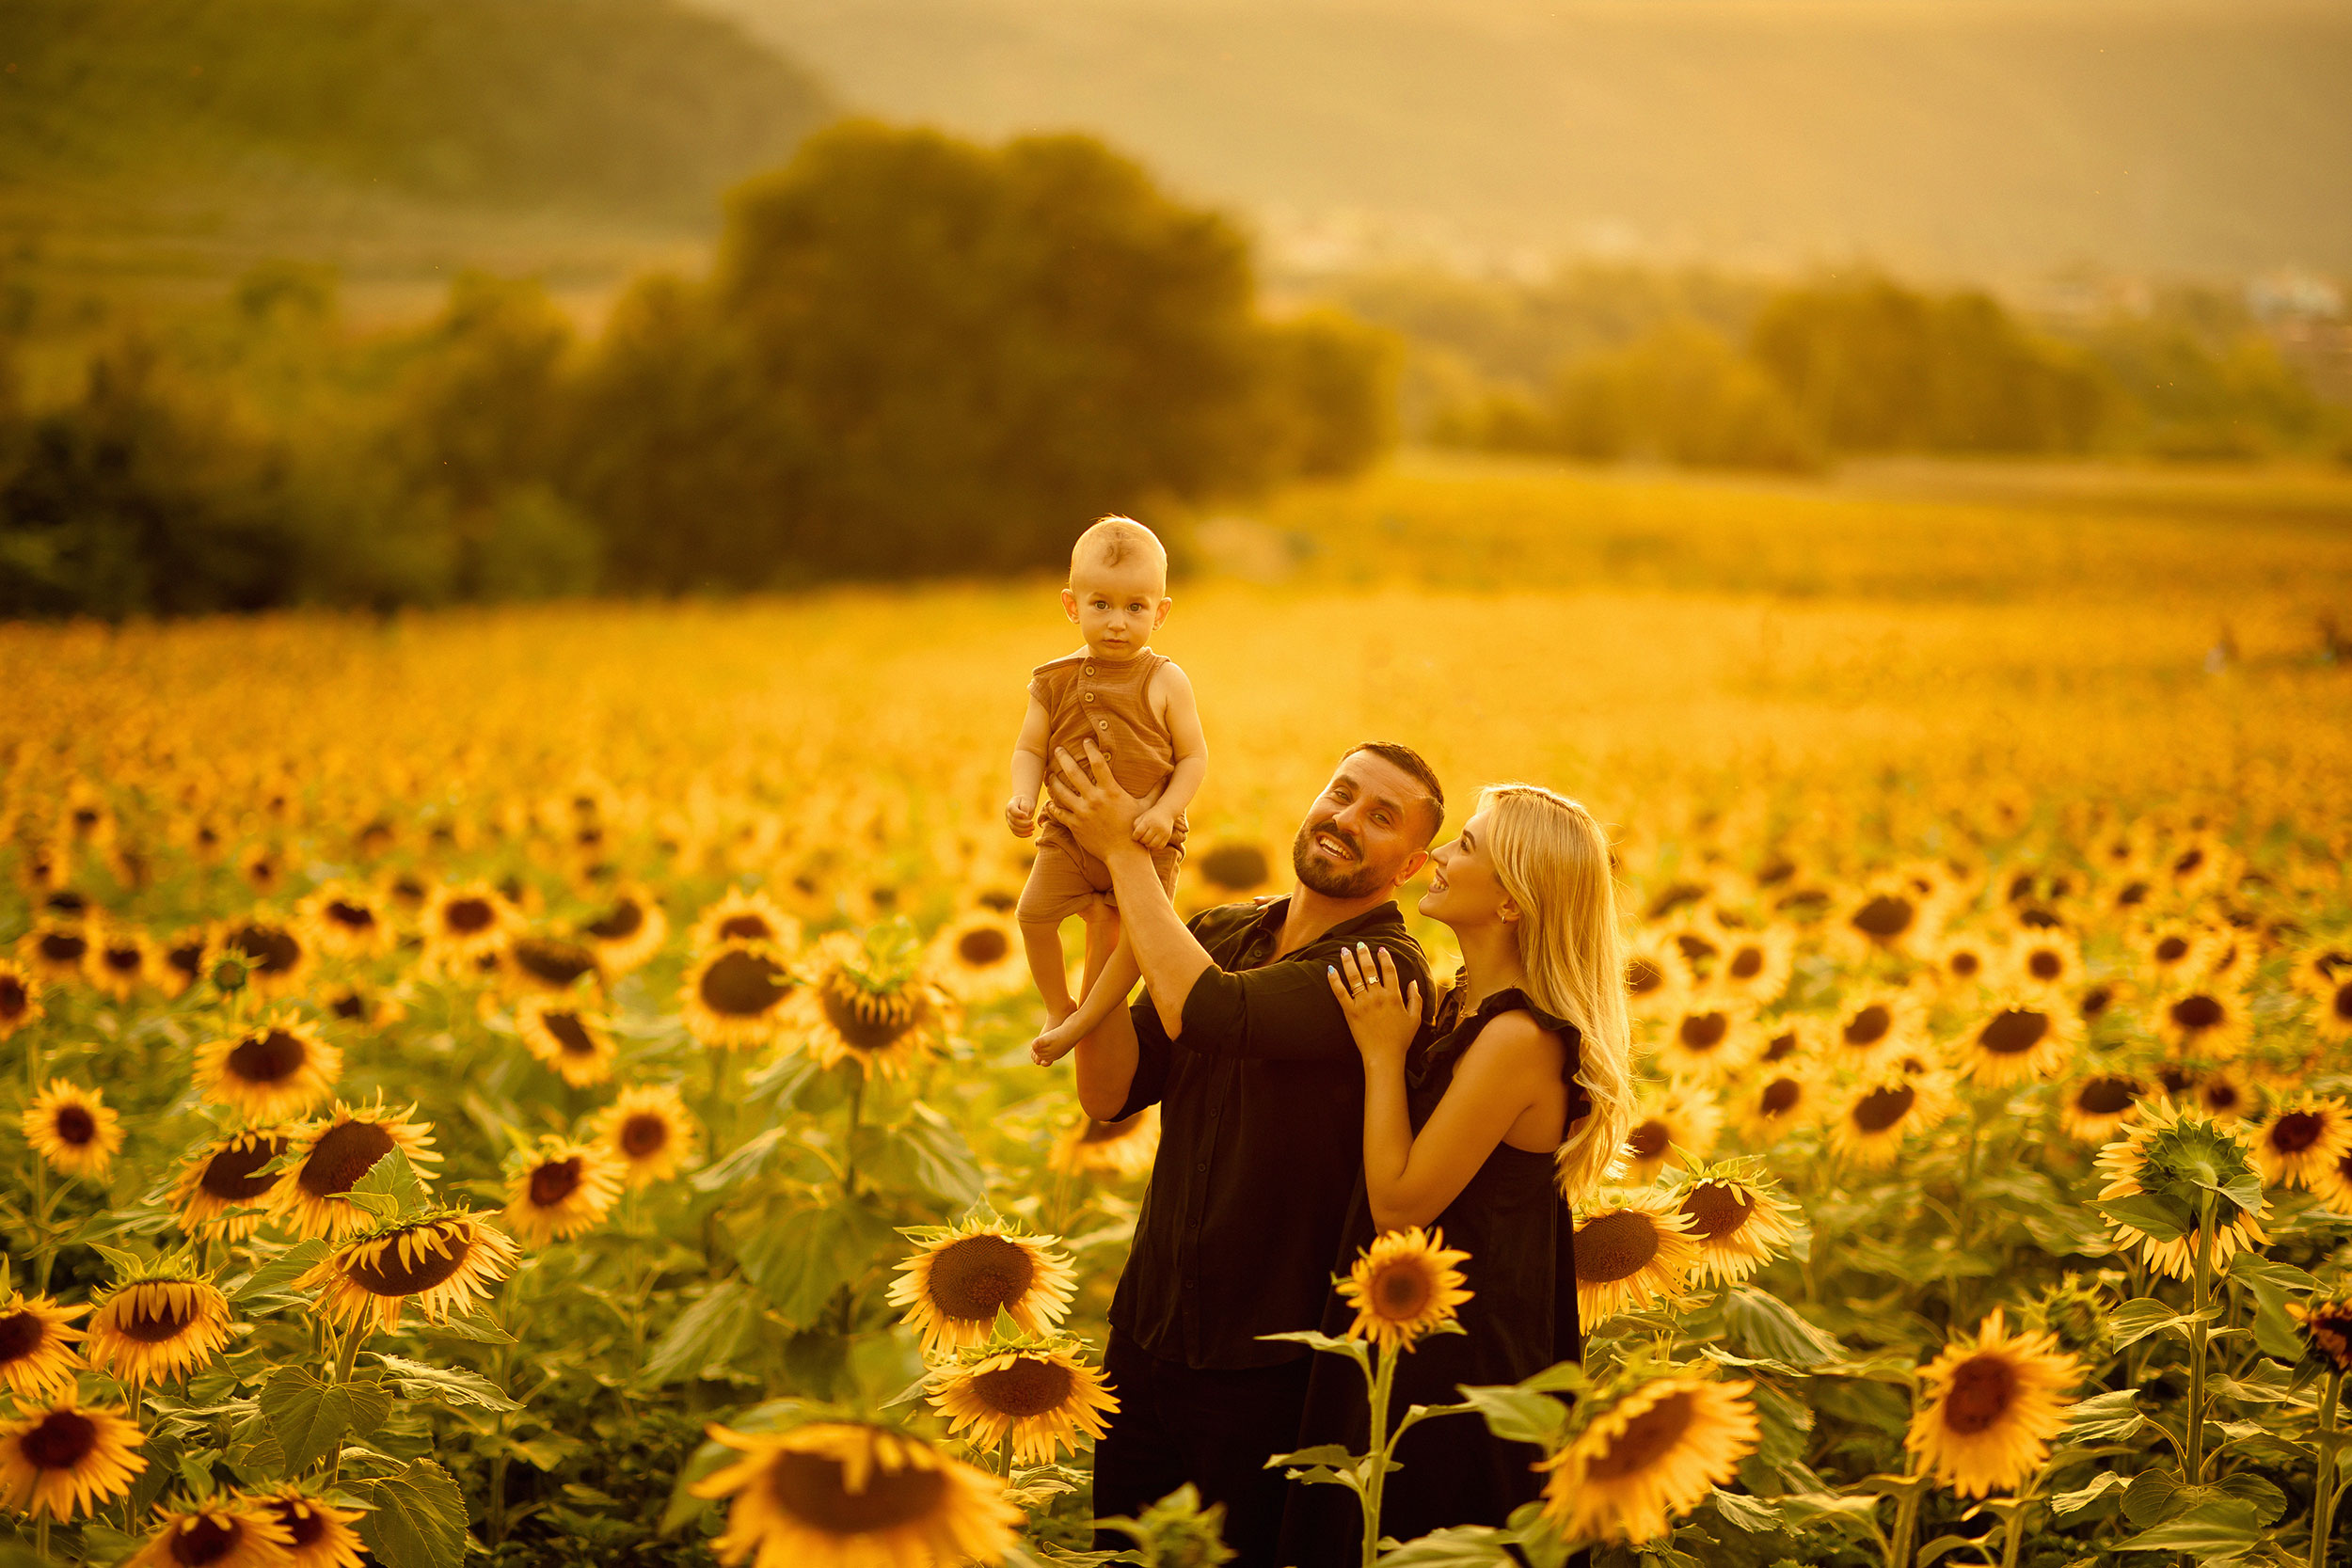 Family photos in a sunflower field